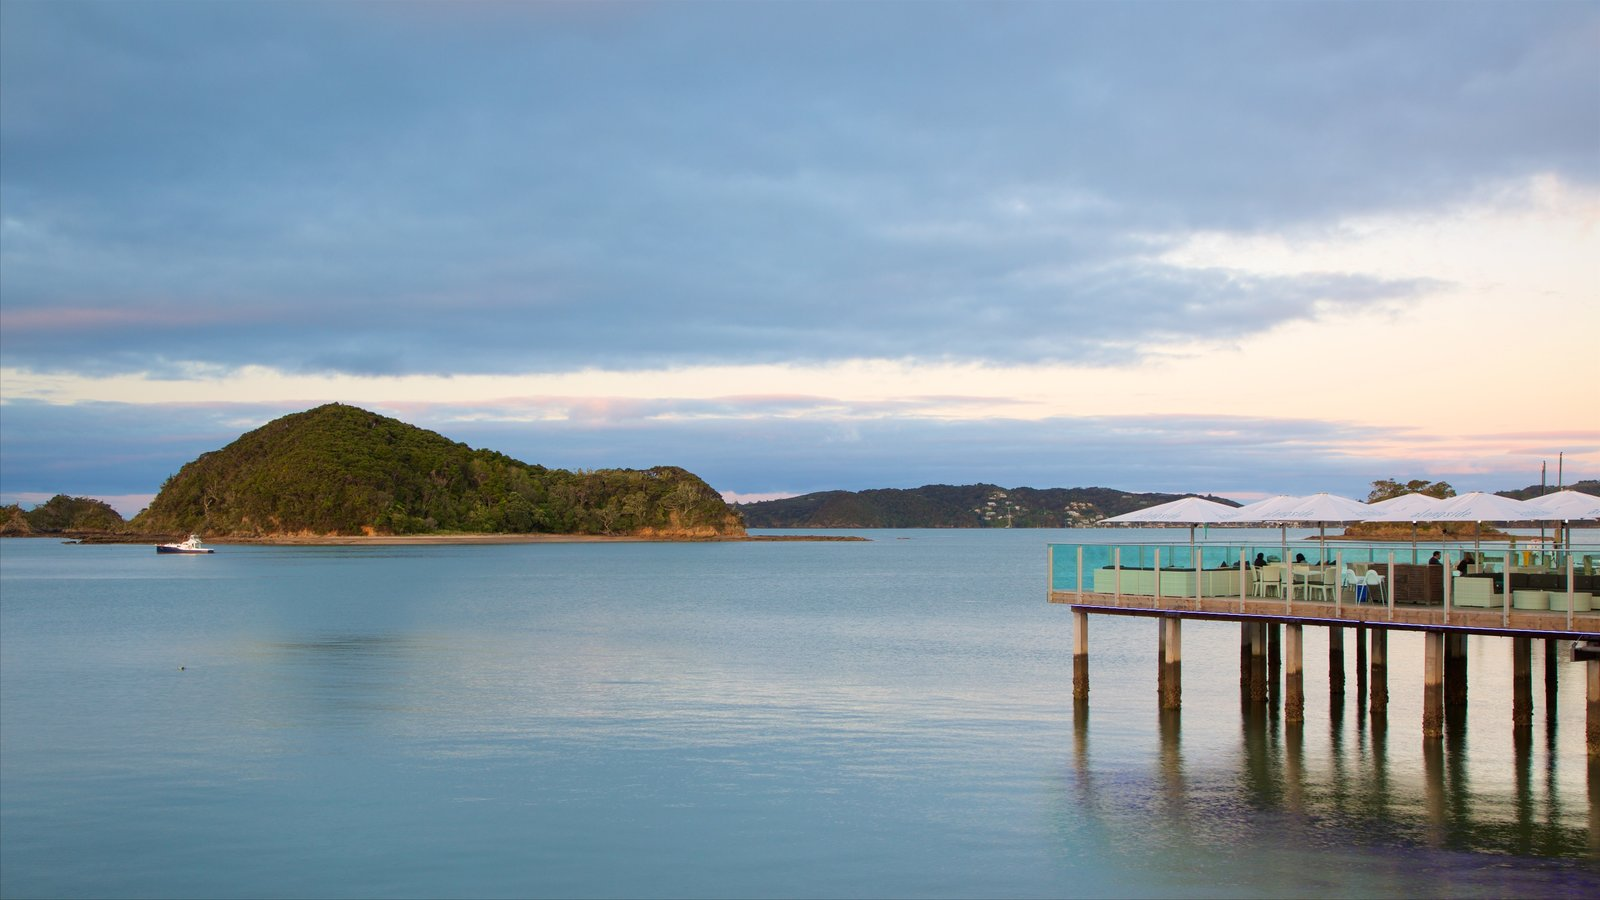 Paihia Wharf showing cafe scenes, a bay or harbor and a sunset